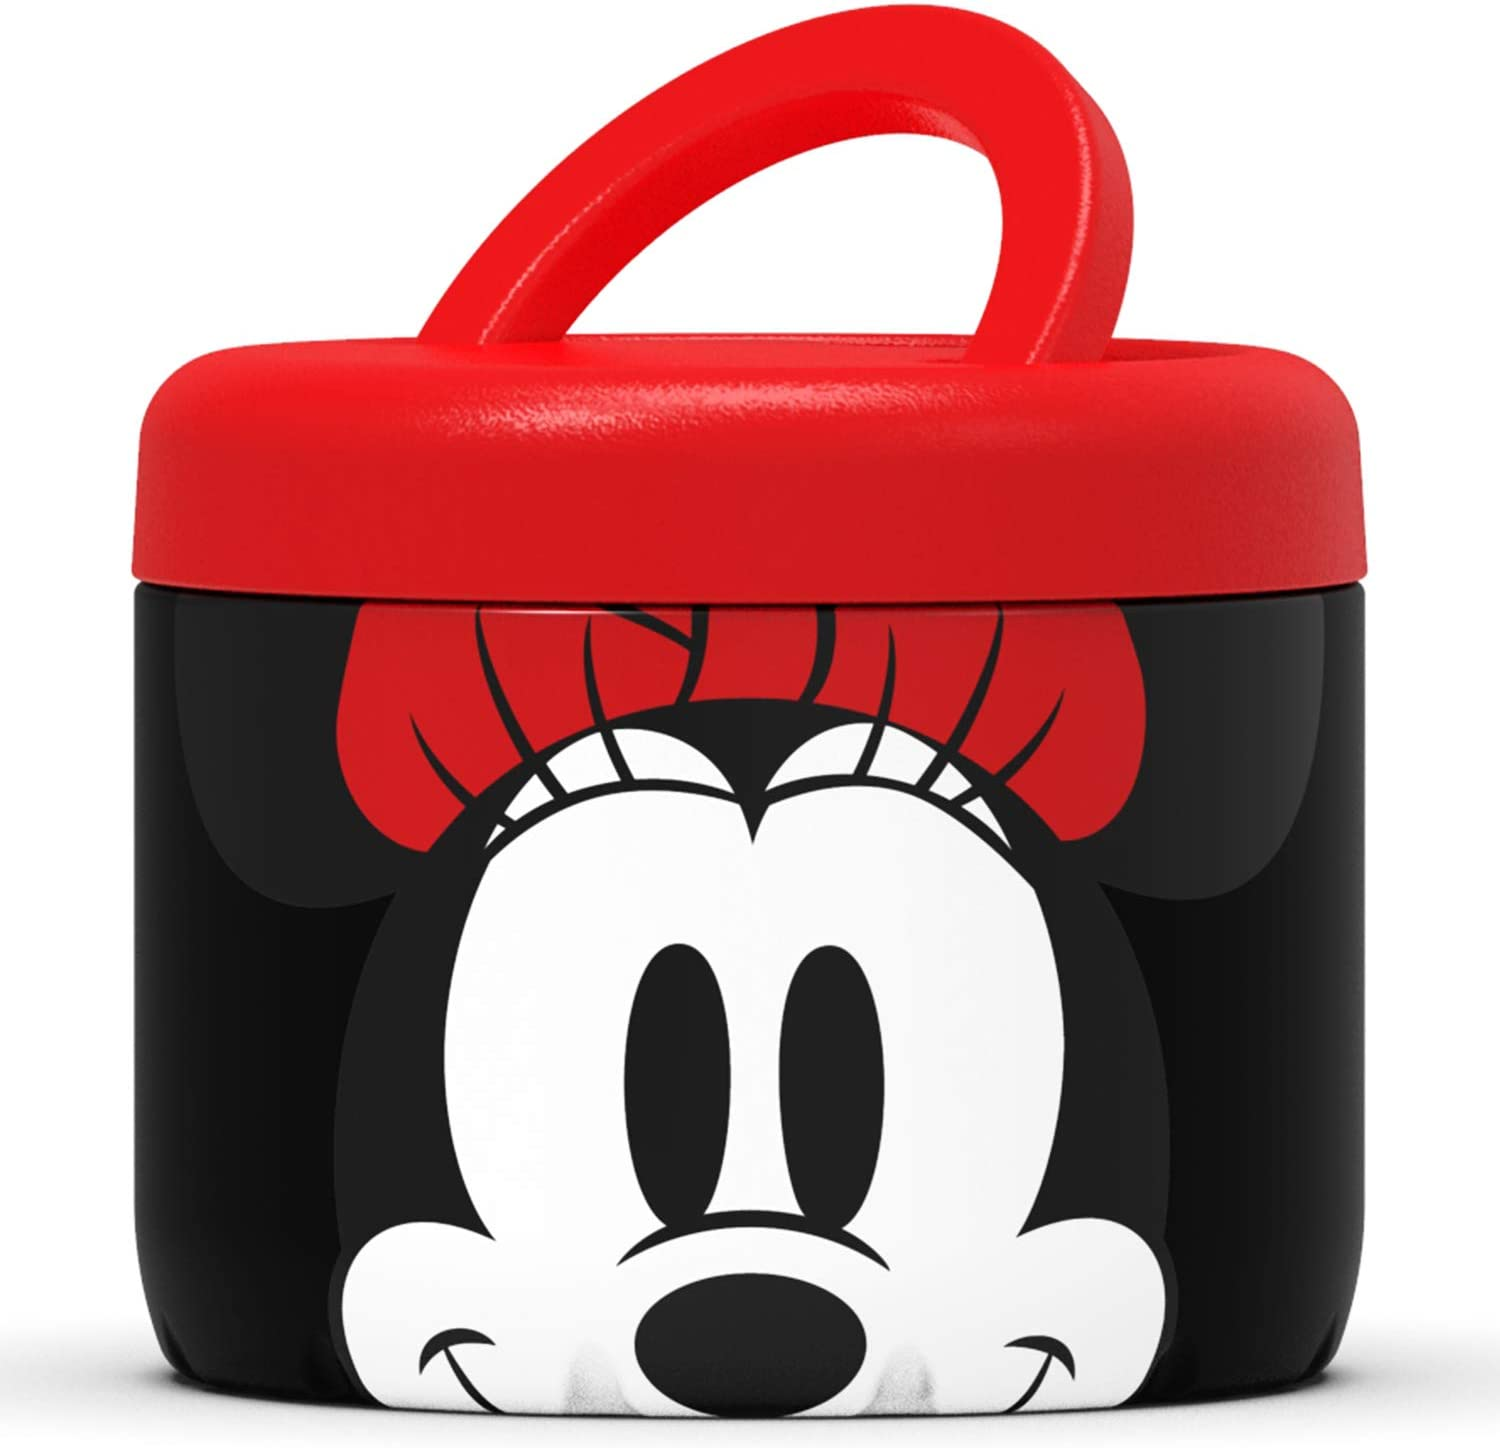 S'nack by S'well Stainless Steel Food Container - 24 Fl Oz - Disney Hello Minnie Mouse - Double-Layered Insulated Bowls Keep Food and Drinks Food and Drinks Cold for 12 Hours and Hot for 7 Hours